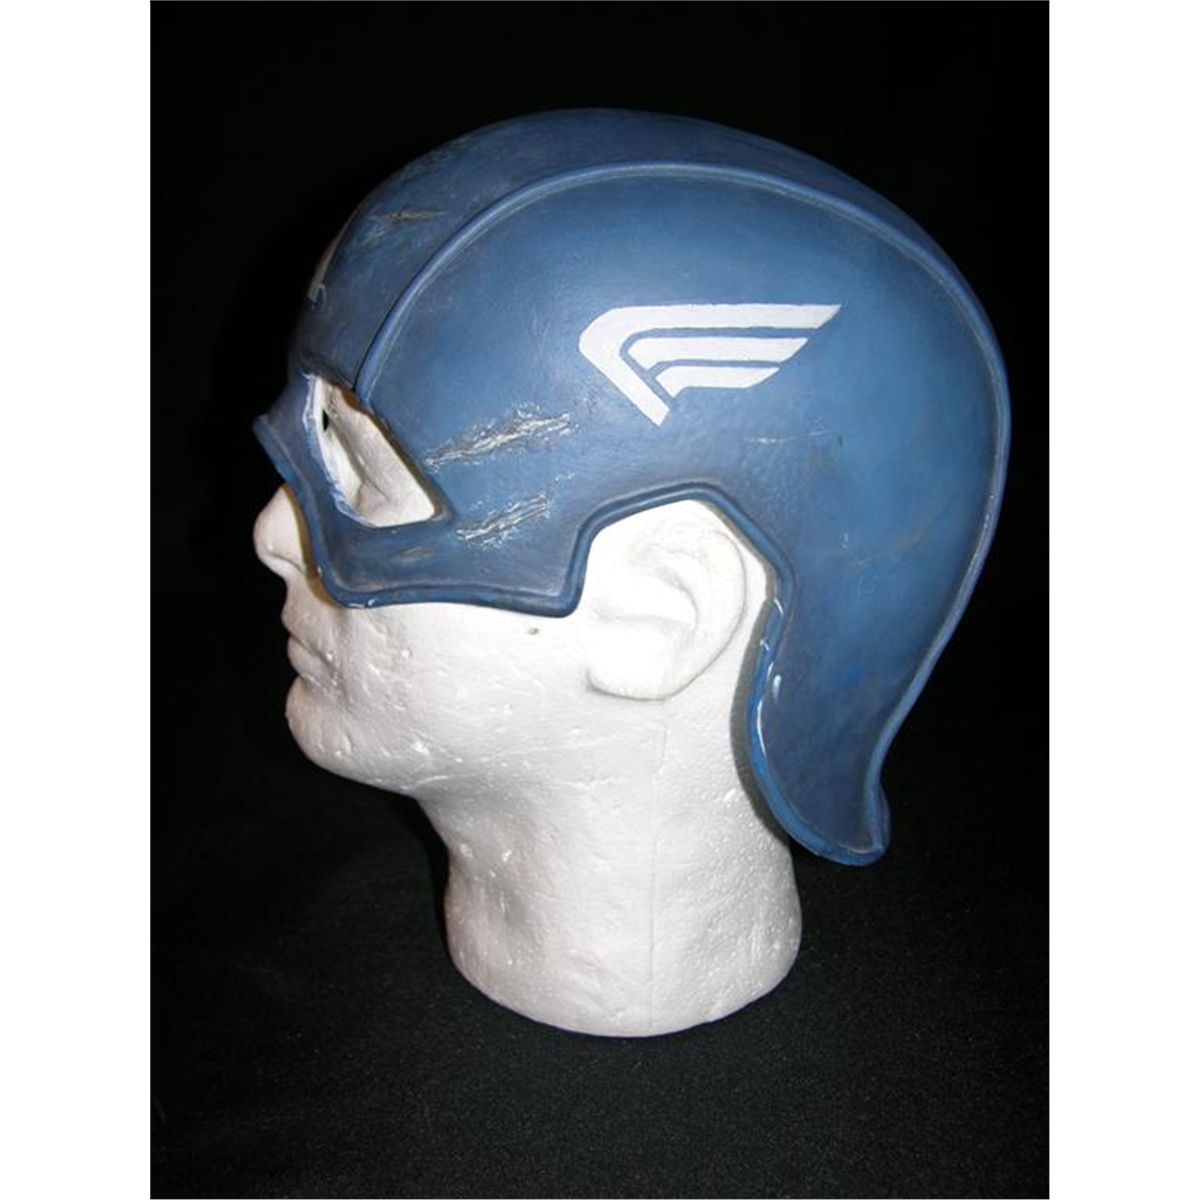 Captain america the first avenger production made helmet pronofoot35fo Image collections